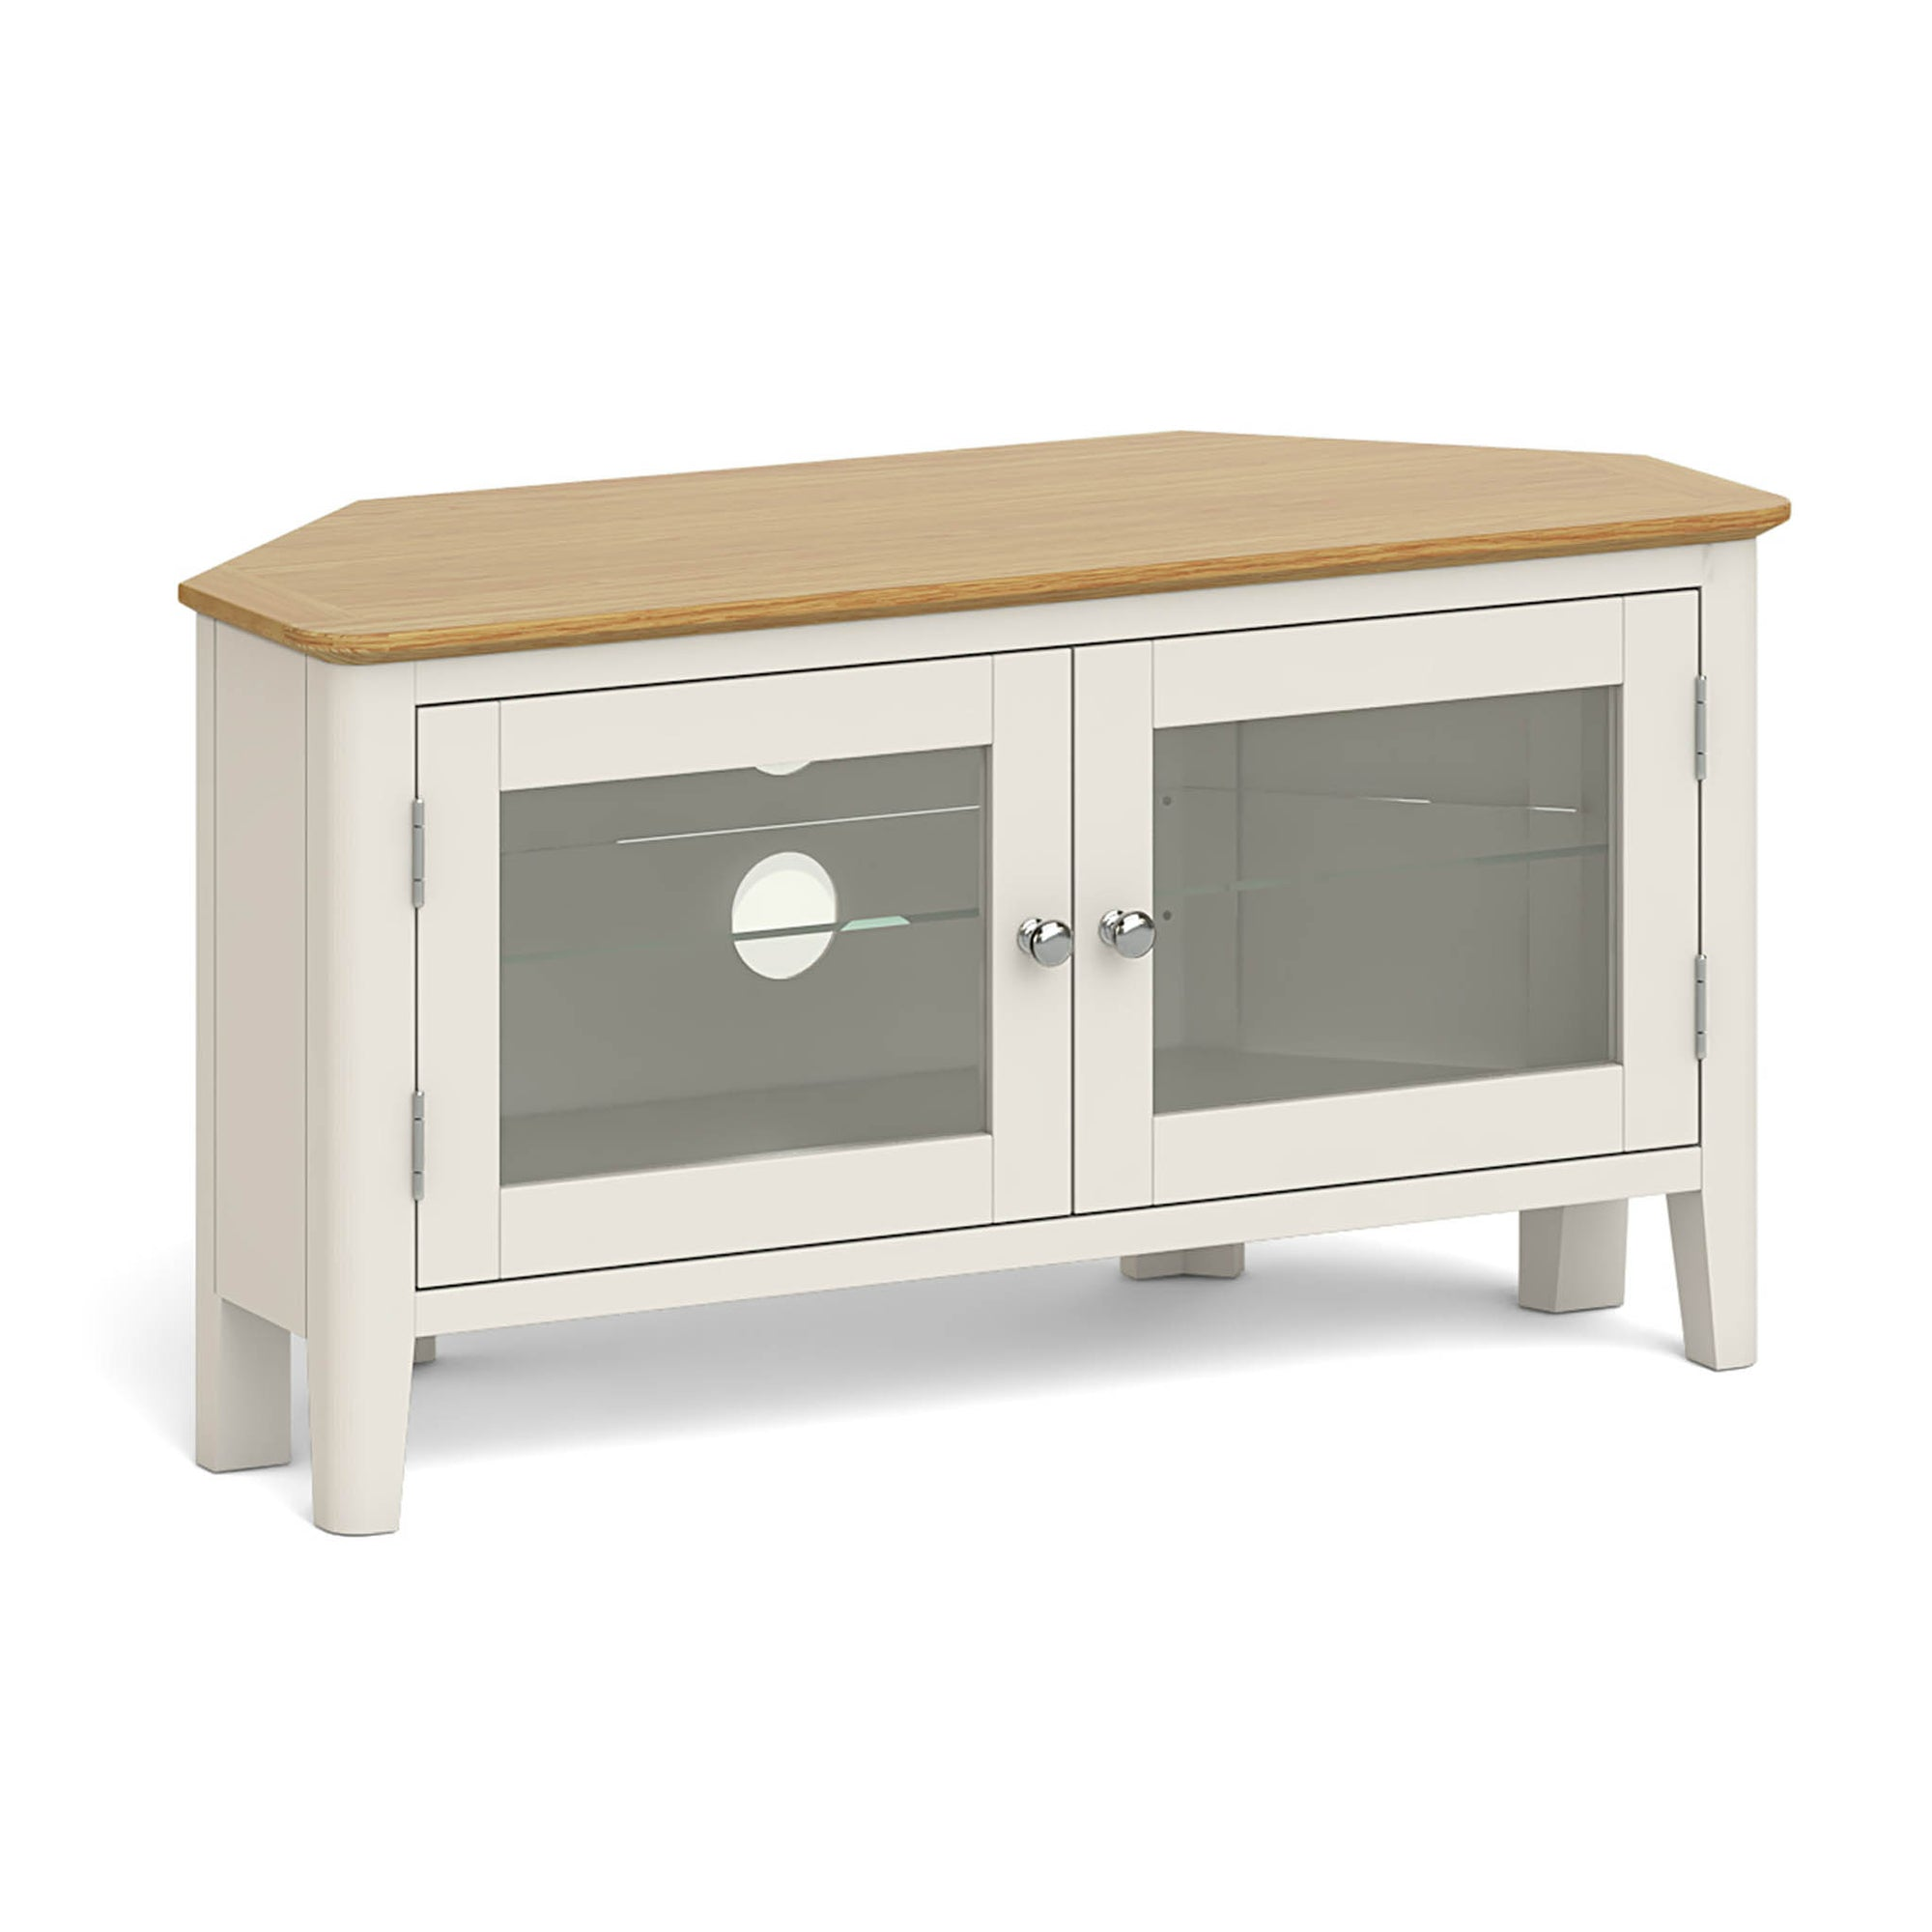 The Windsor Cream Corner TV Stand Storage Cabinet from Roseland Furniture